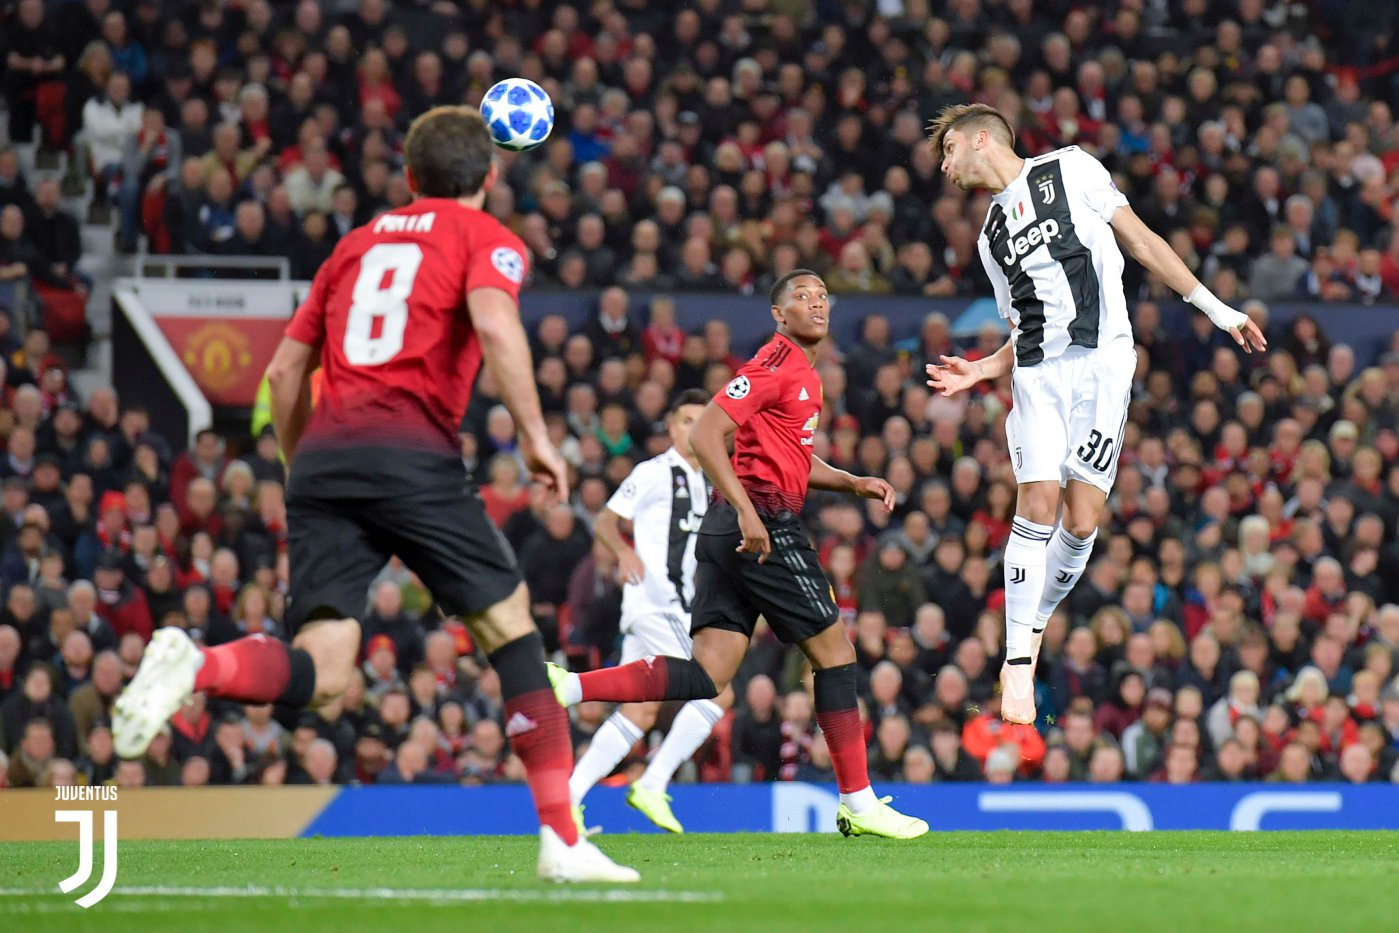 UCL: Oliseh Hails Former Club Juventus For Solid Showing In Away Win Vs Man United